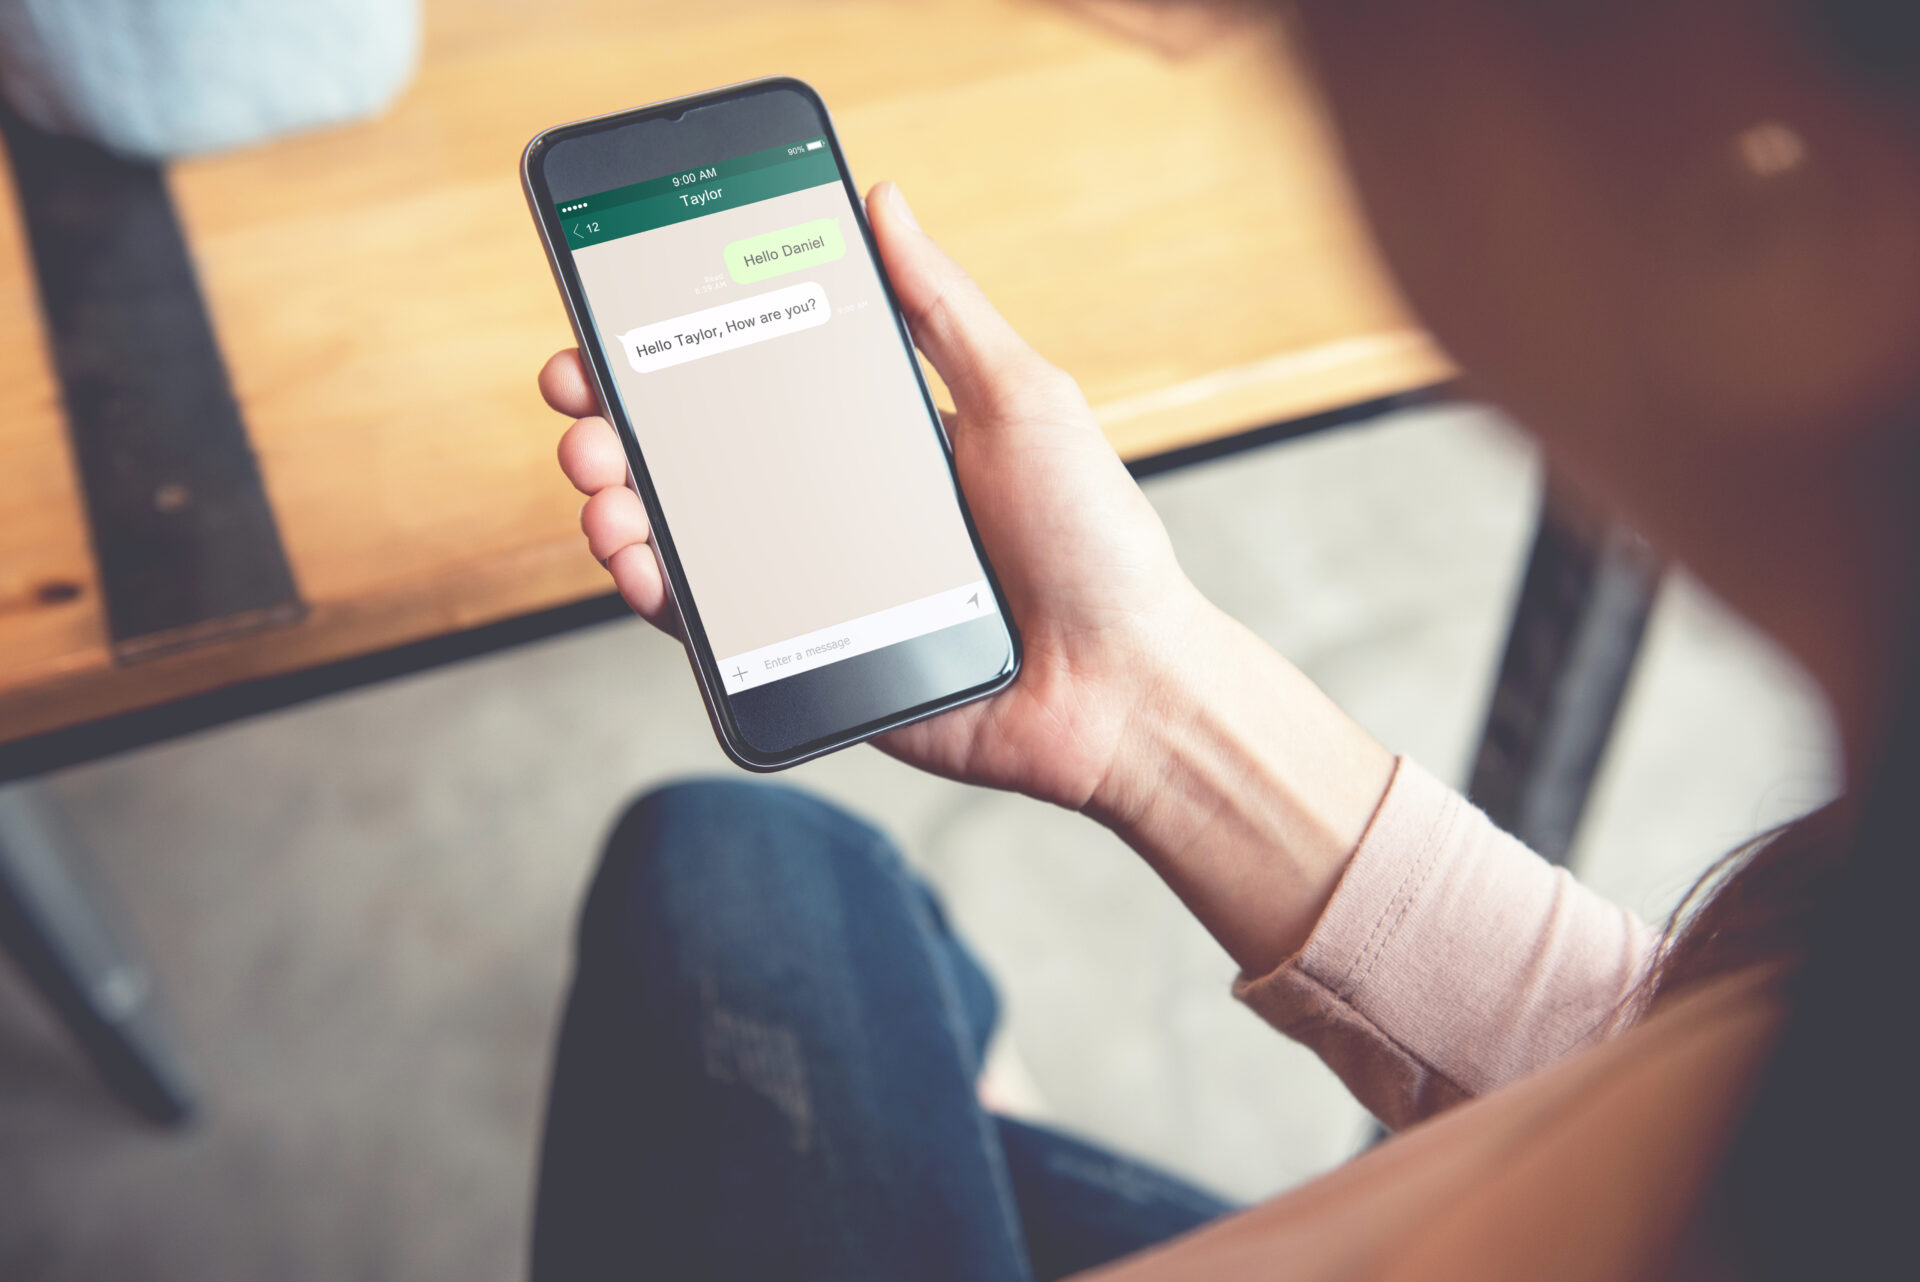 Send notifications, promotions, follow-up messages and appointment reminders via messaging channels like WhatsApp and achieve 95% open rates